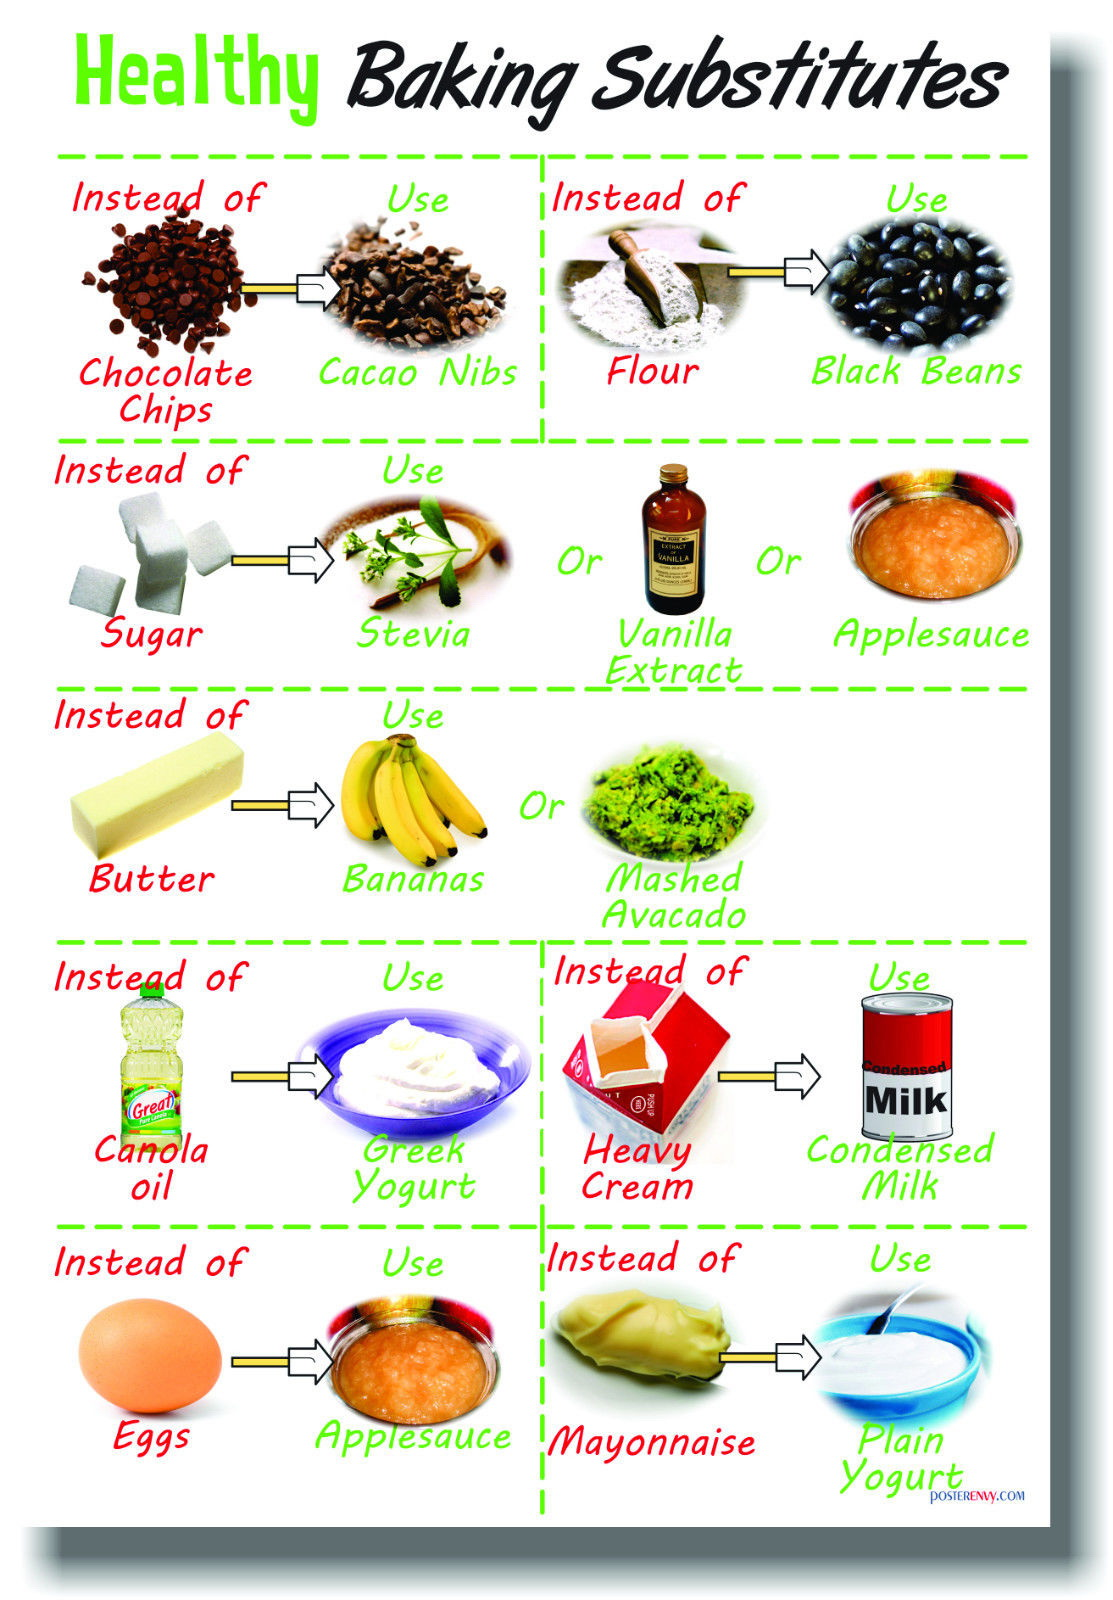 173749 Healthy Baking Substitutes Health Diet Nutrition WALL PRINT POSTER US